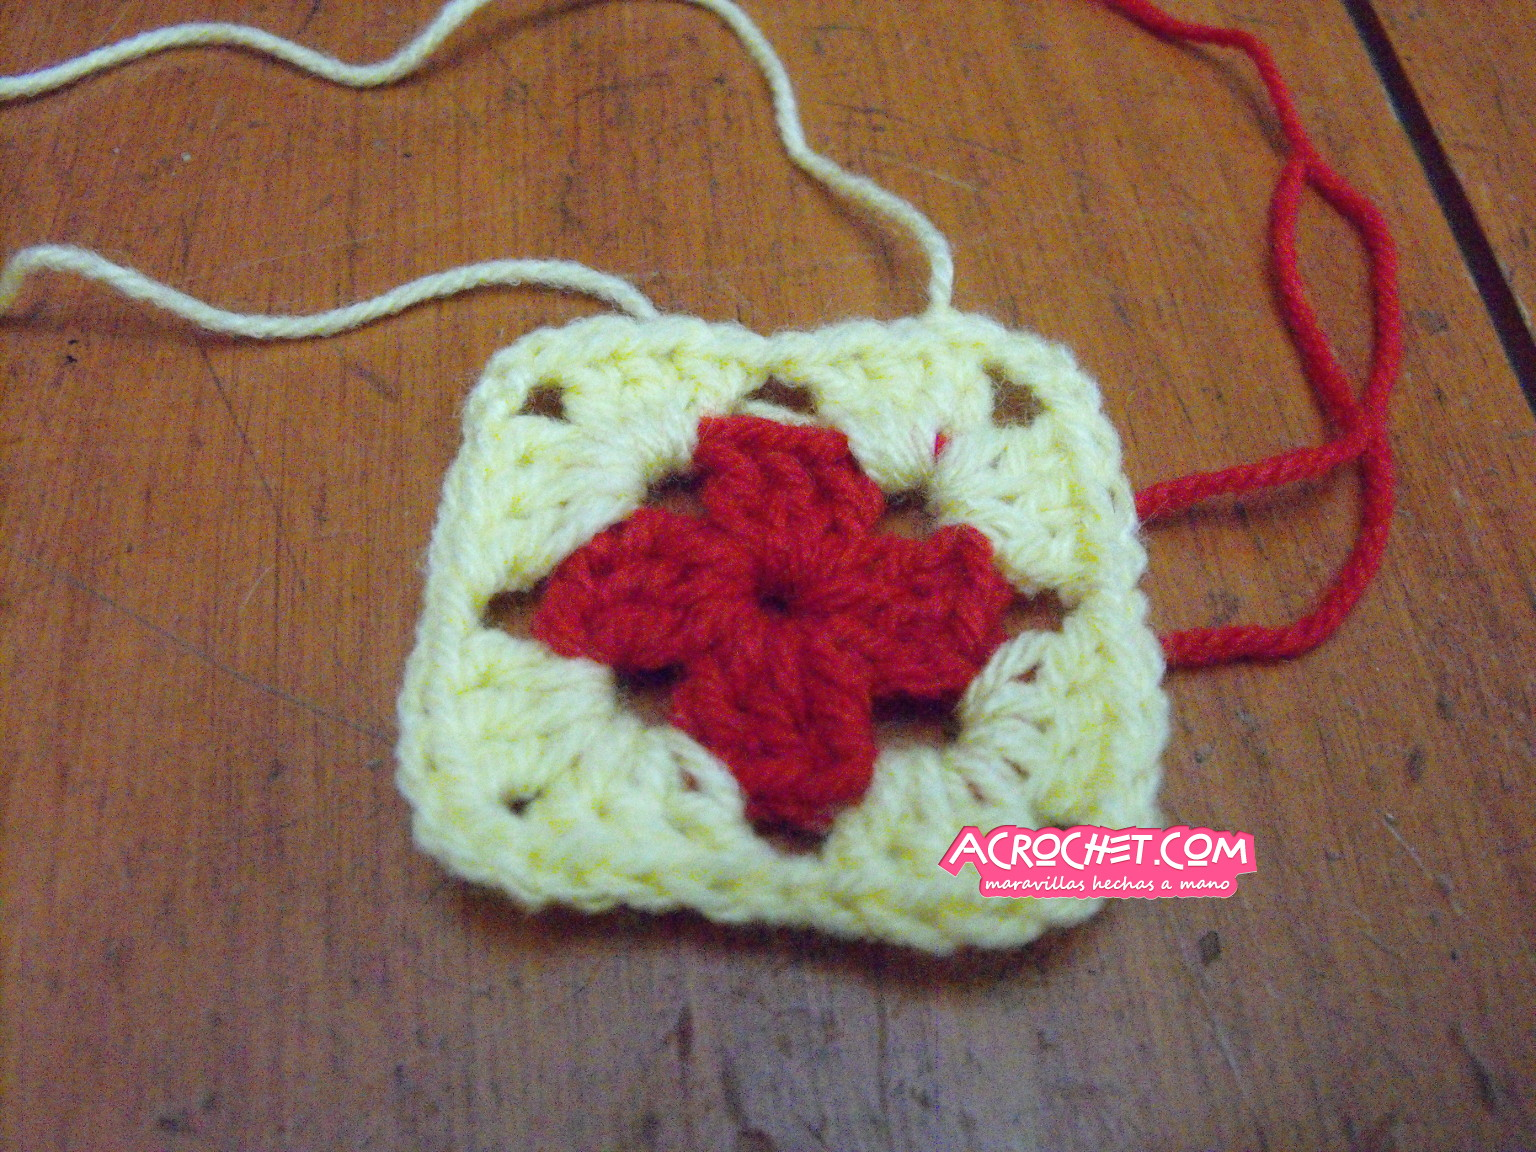 manta patchwork en 5 colores parte 1 blog a crochet acrochet 1536 x